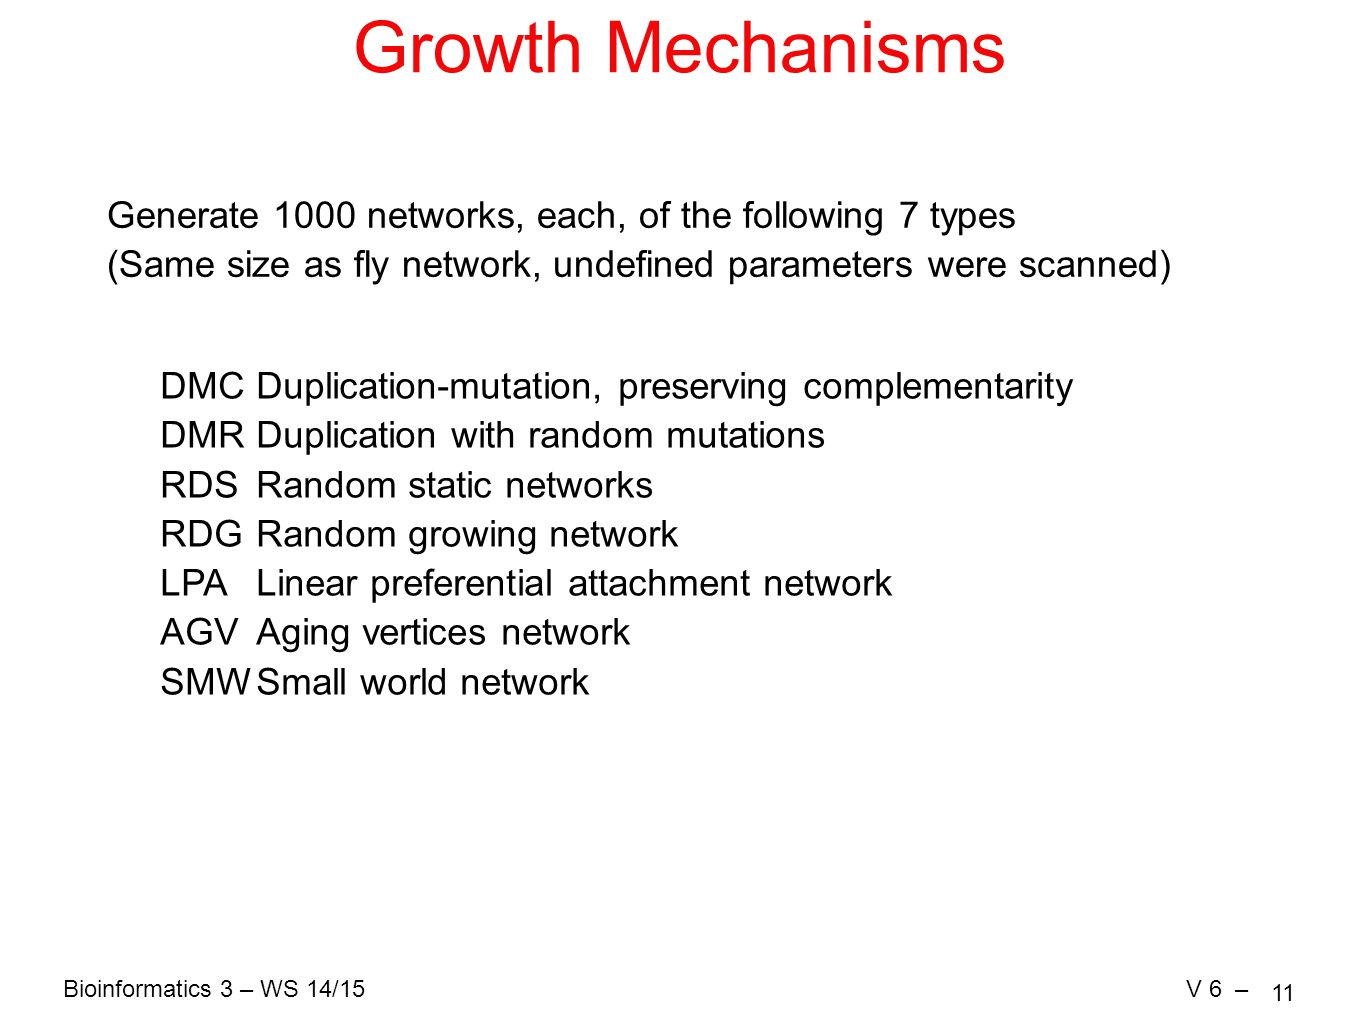 Bioinformatics 3 – WS 14/15V 6 – 11 Growth Mechanisms Generate 1000 networks, each, of the following 7 types (Same size as fly network, undefined parameters were scanned) DMC Duplication-mutation, preserving complementarity DMRDuplication with random mutations RDS Random static networks RDGRandom growing network LPA Linear preferential attachment network AGVAging vertices network SMWSmall world network